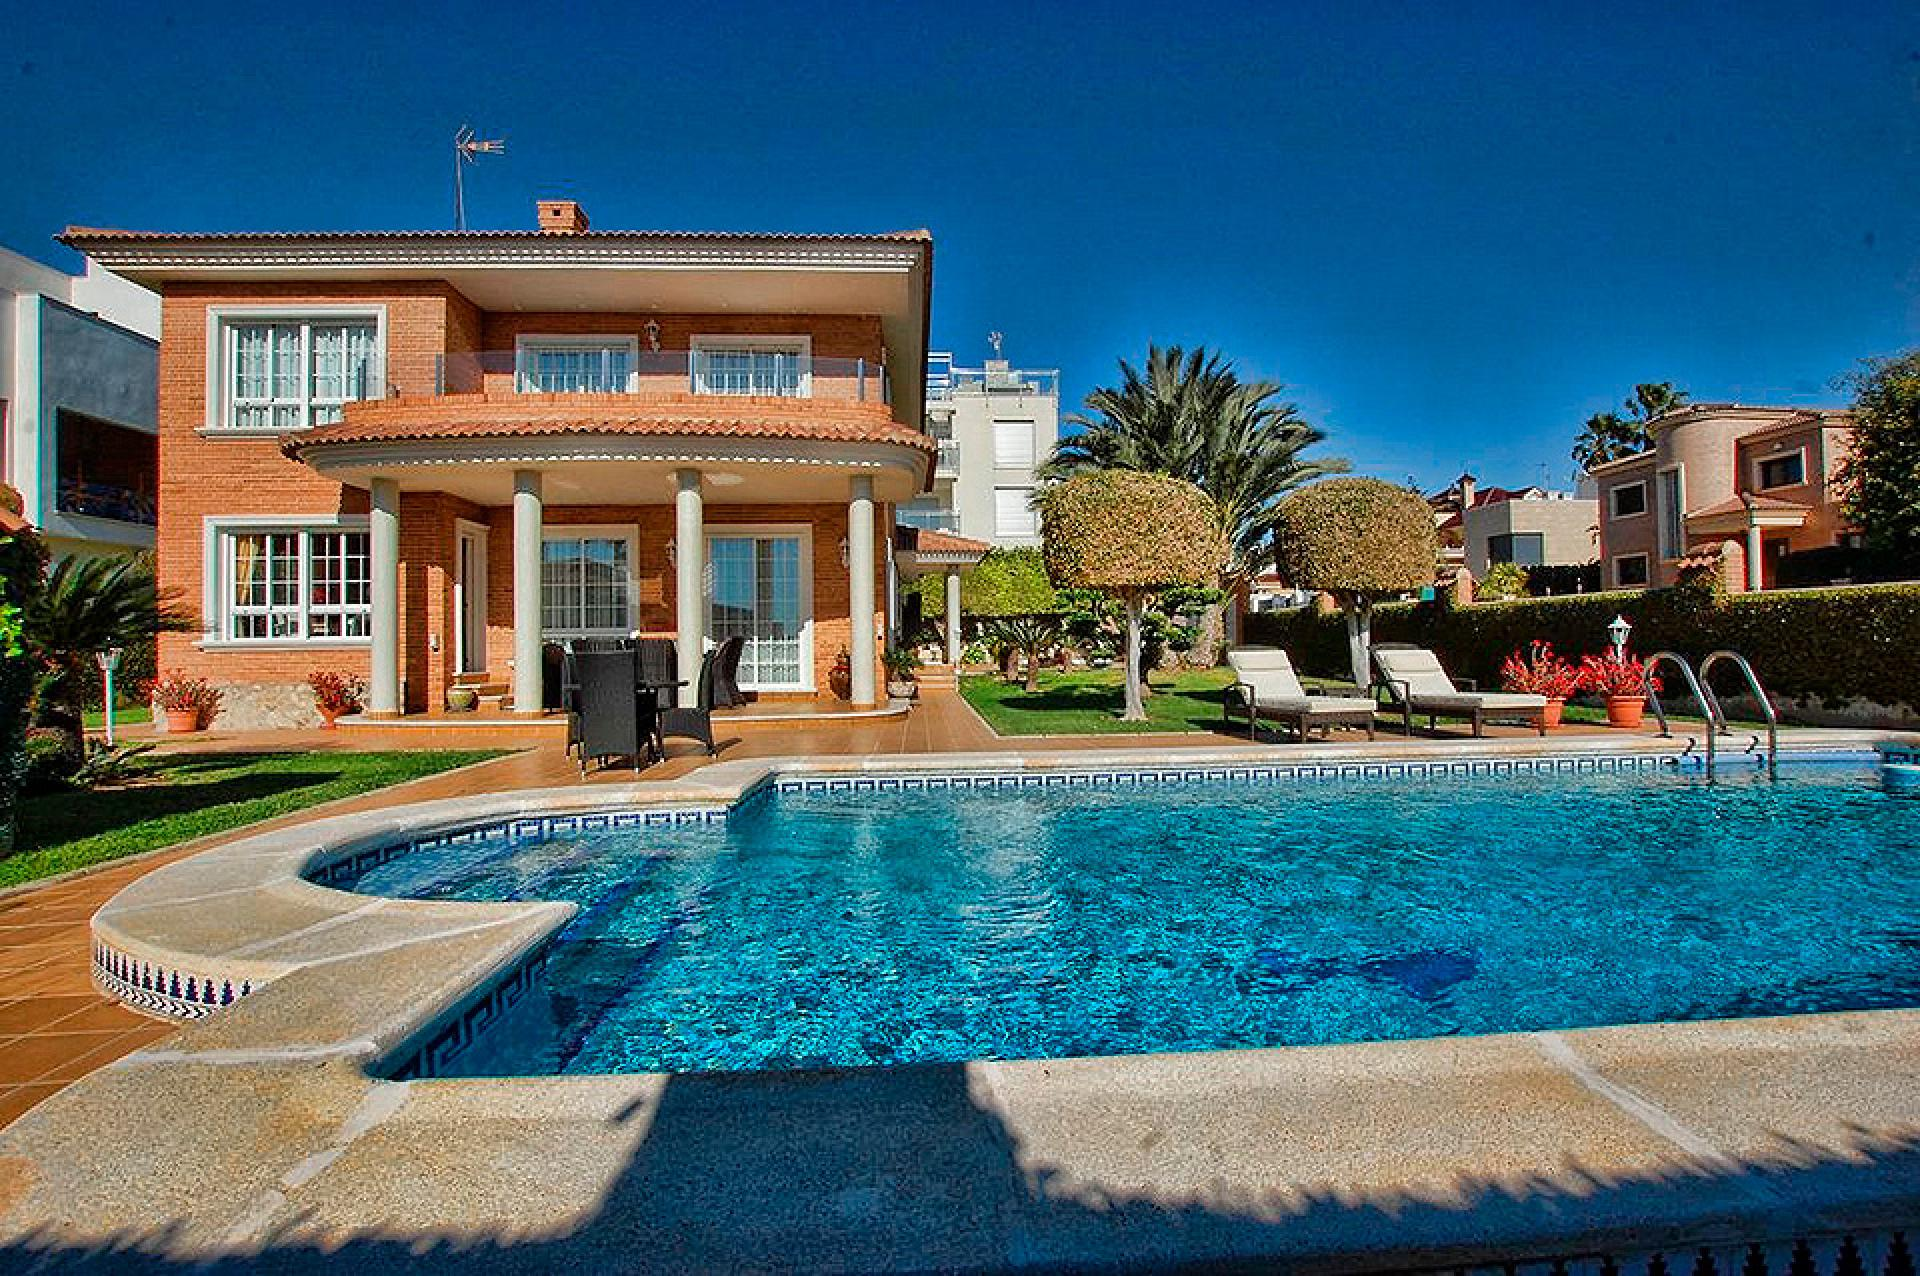 4 bedroom Villa in Torrevieja in Medvilla Spanje